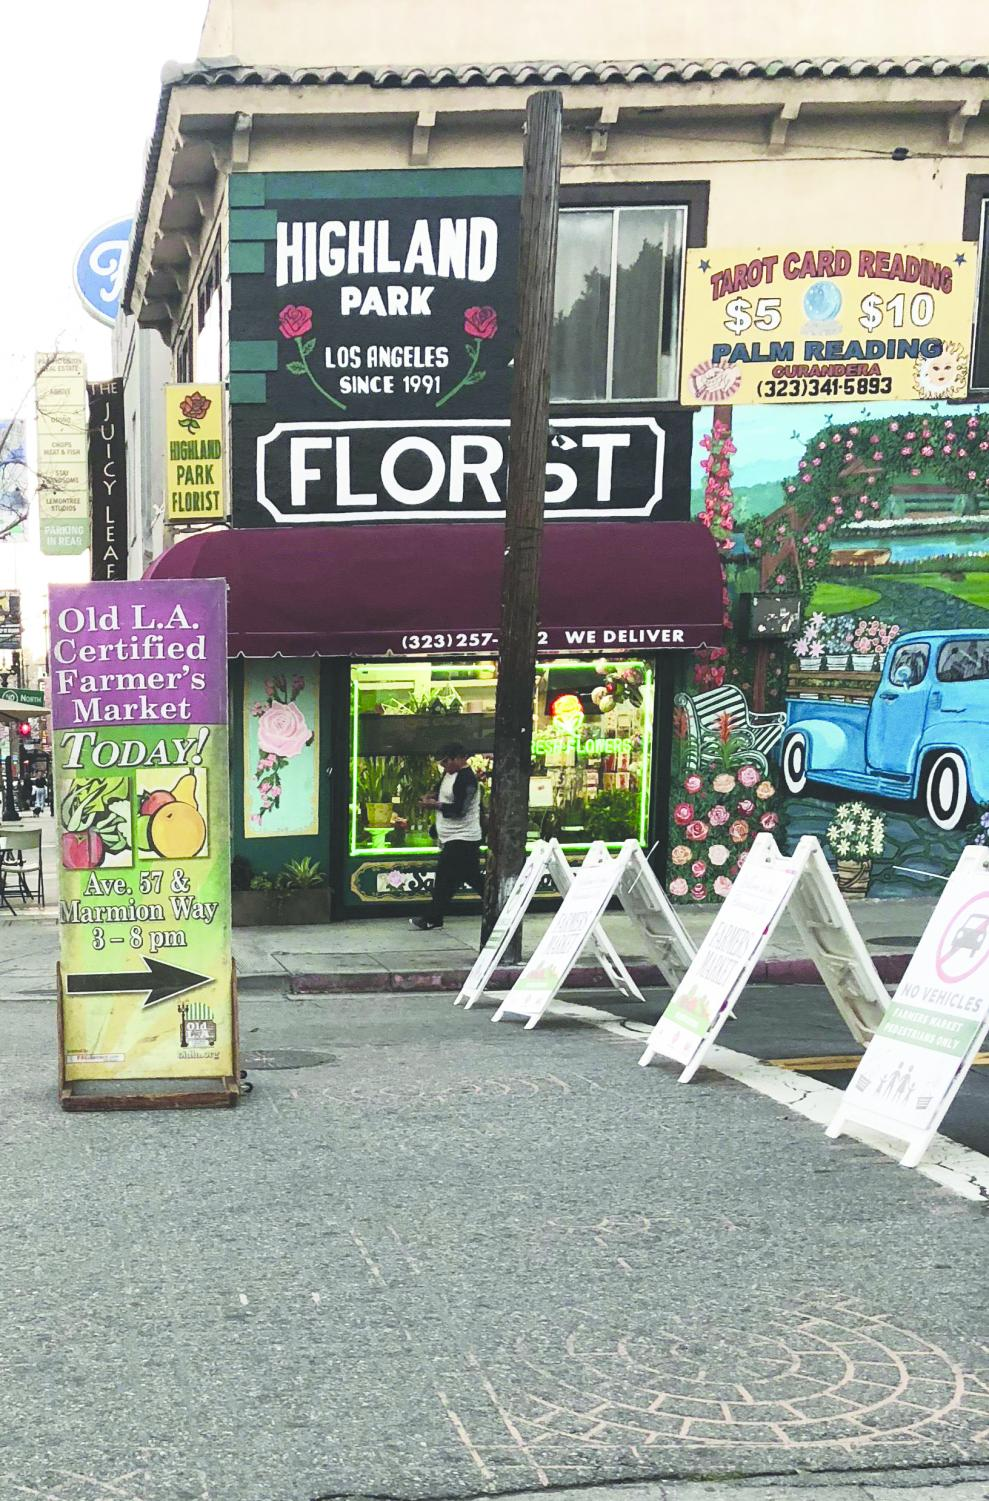 A sign points the way to the Highland Park farmers market. Photo by Martha Nerio.